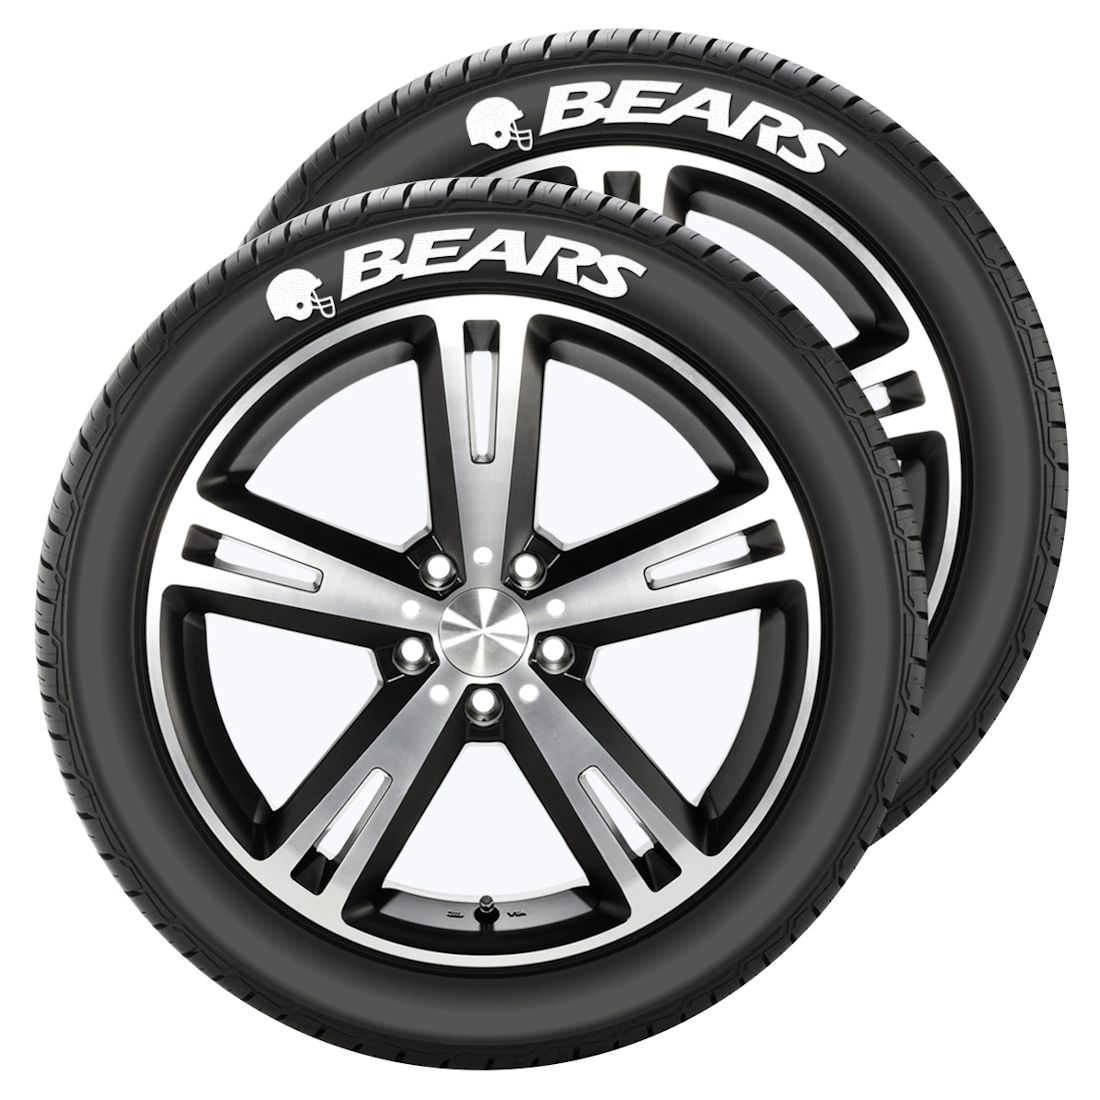 Chicago Bears Tire Tatz by Team Promark